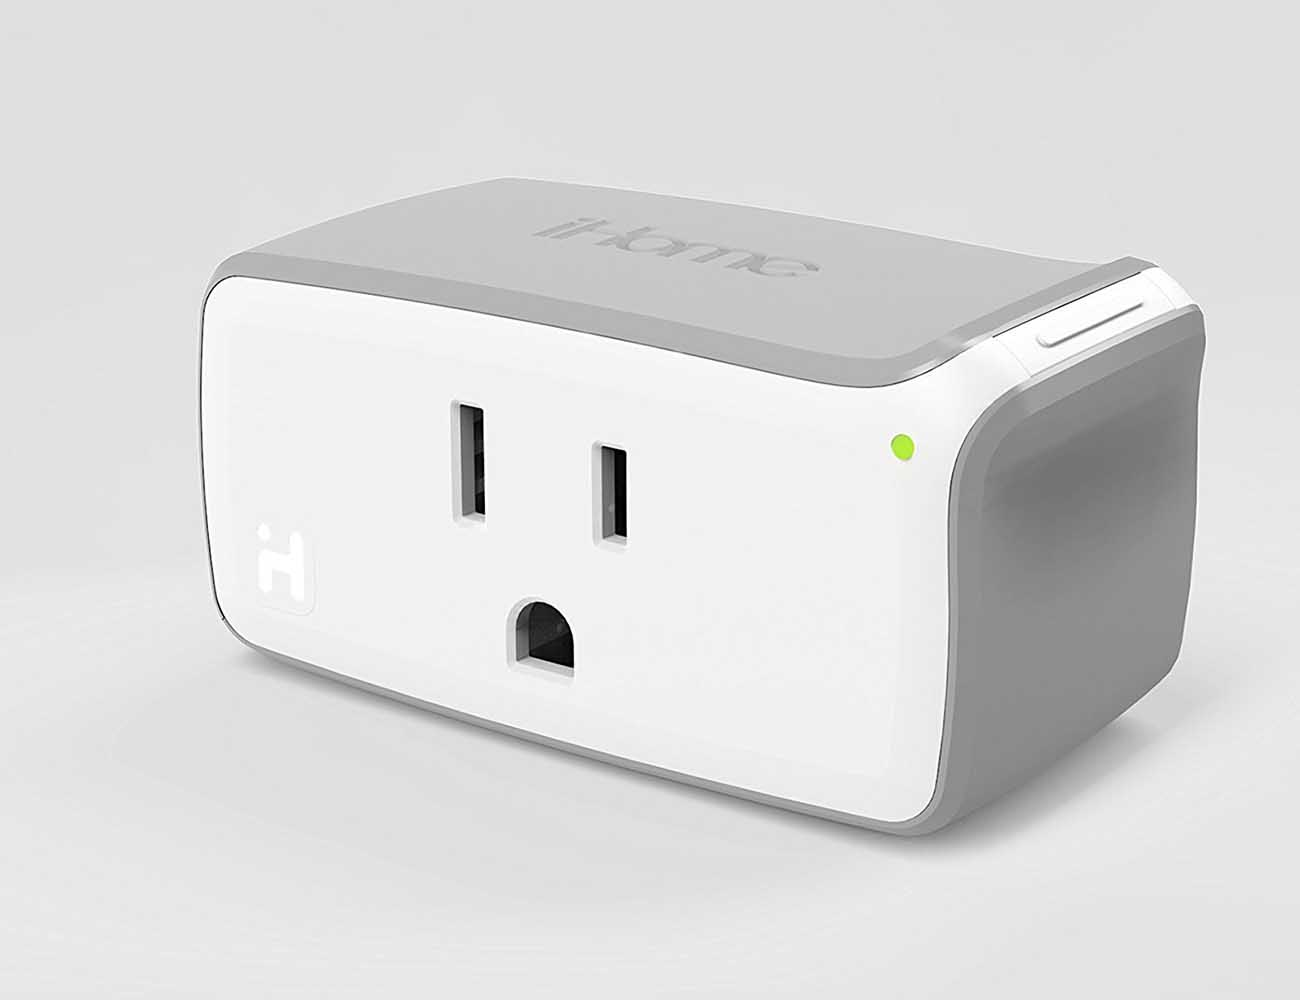 SmartPlug+%E2%80%93+WiFi+Enabled+Wall+Plug%C2%A0from+IHome